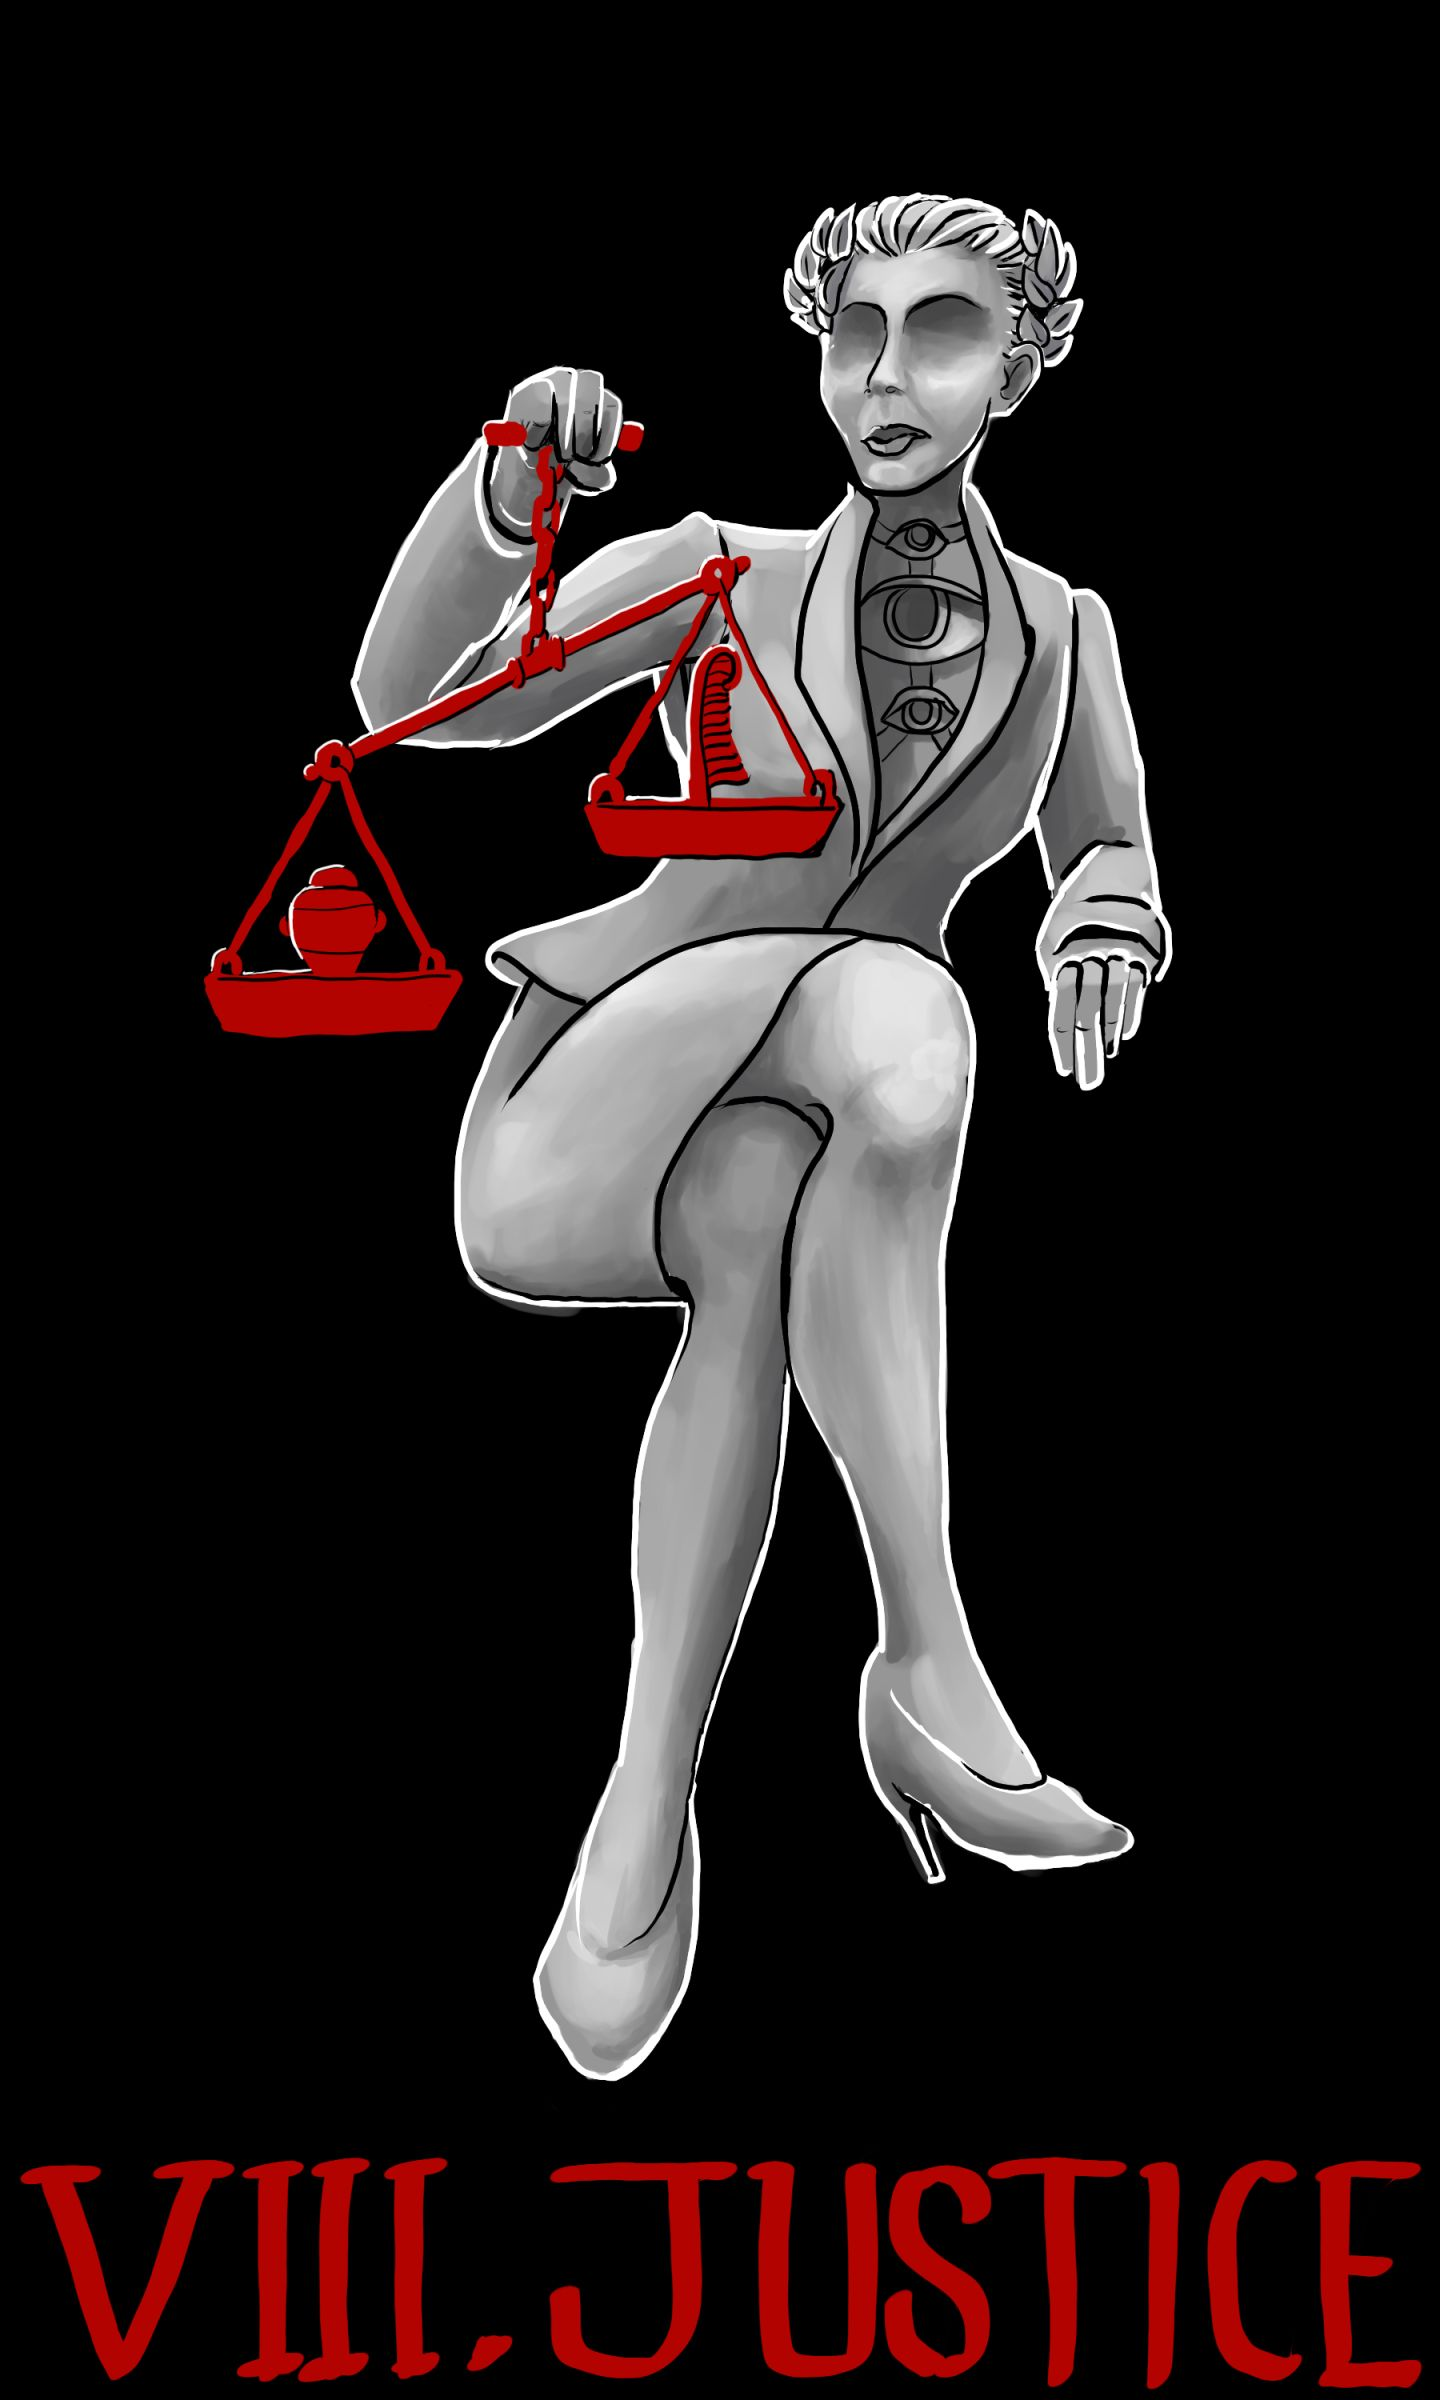 Justice: A laurel-crowned woman with short hair and no eyes, wearing a business suit and high heels, and a terrifying necklace with three vertically stacked eyes on it. Her legs are crossed and she holds up a red scale with a feather on one side and the bust of an idol on the other. The weight tips towards the idol.